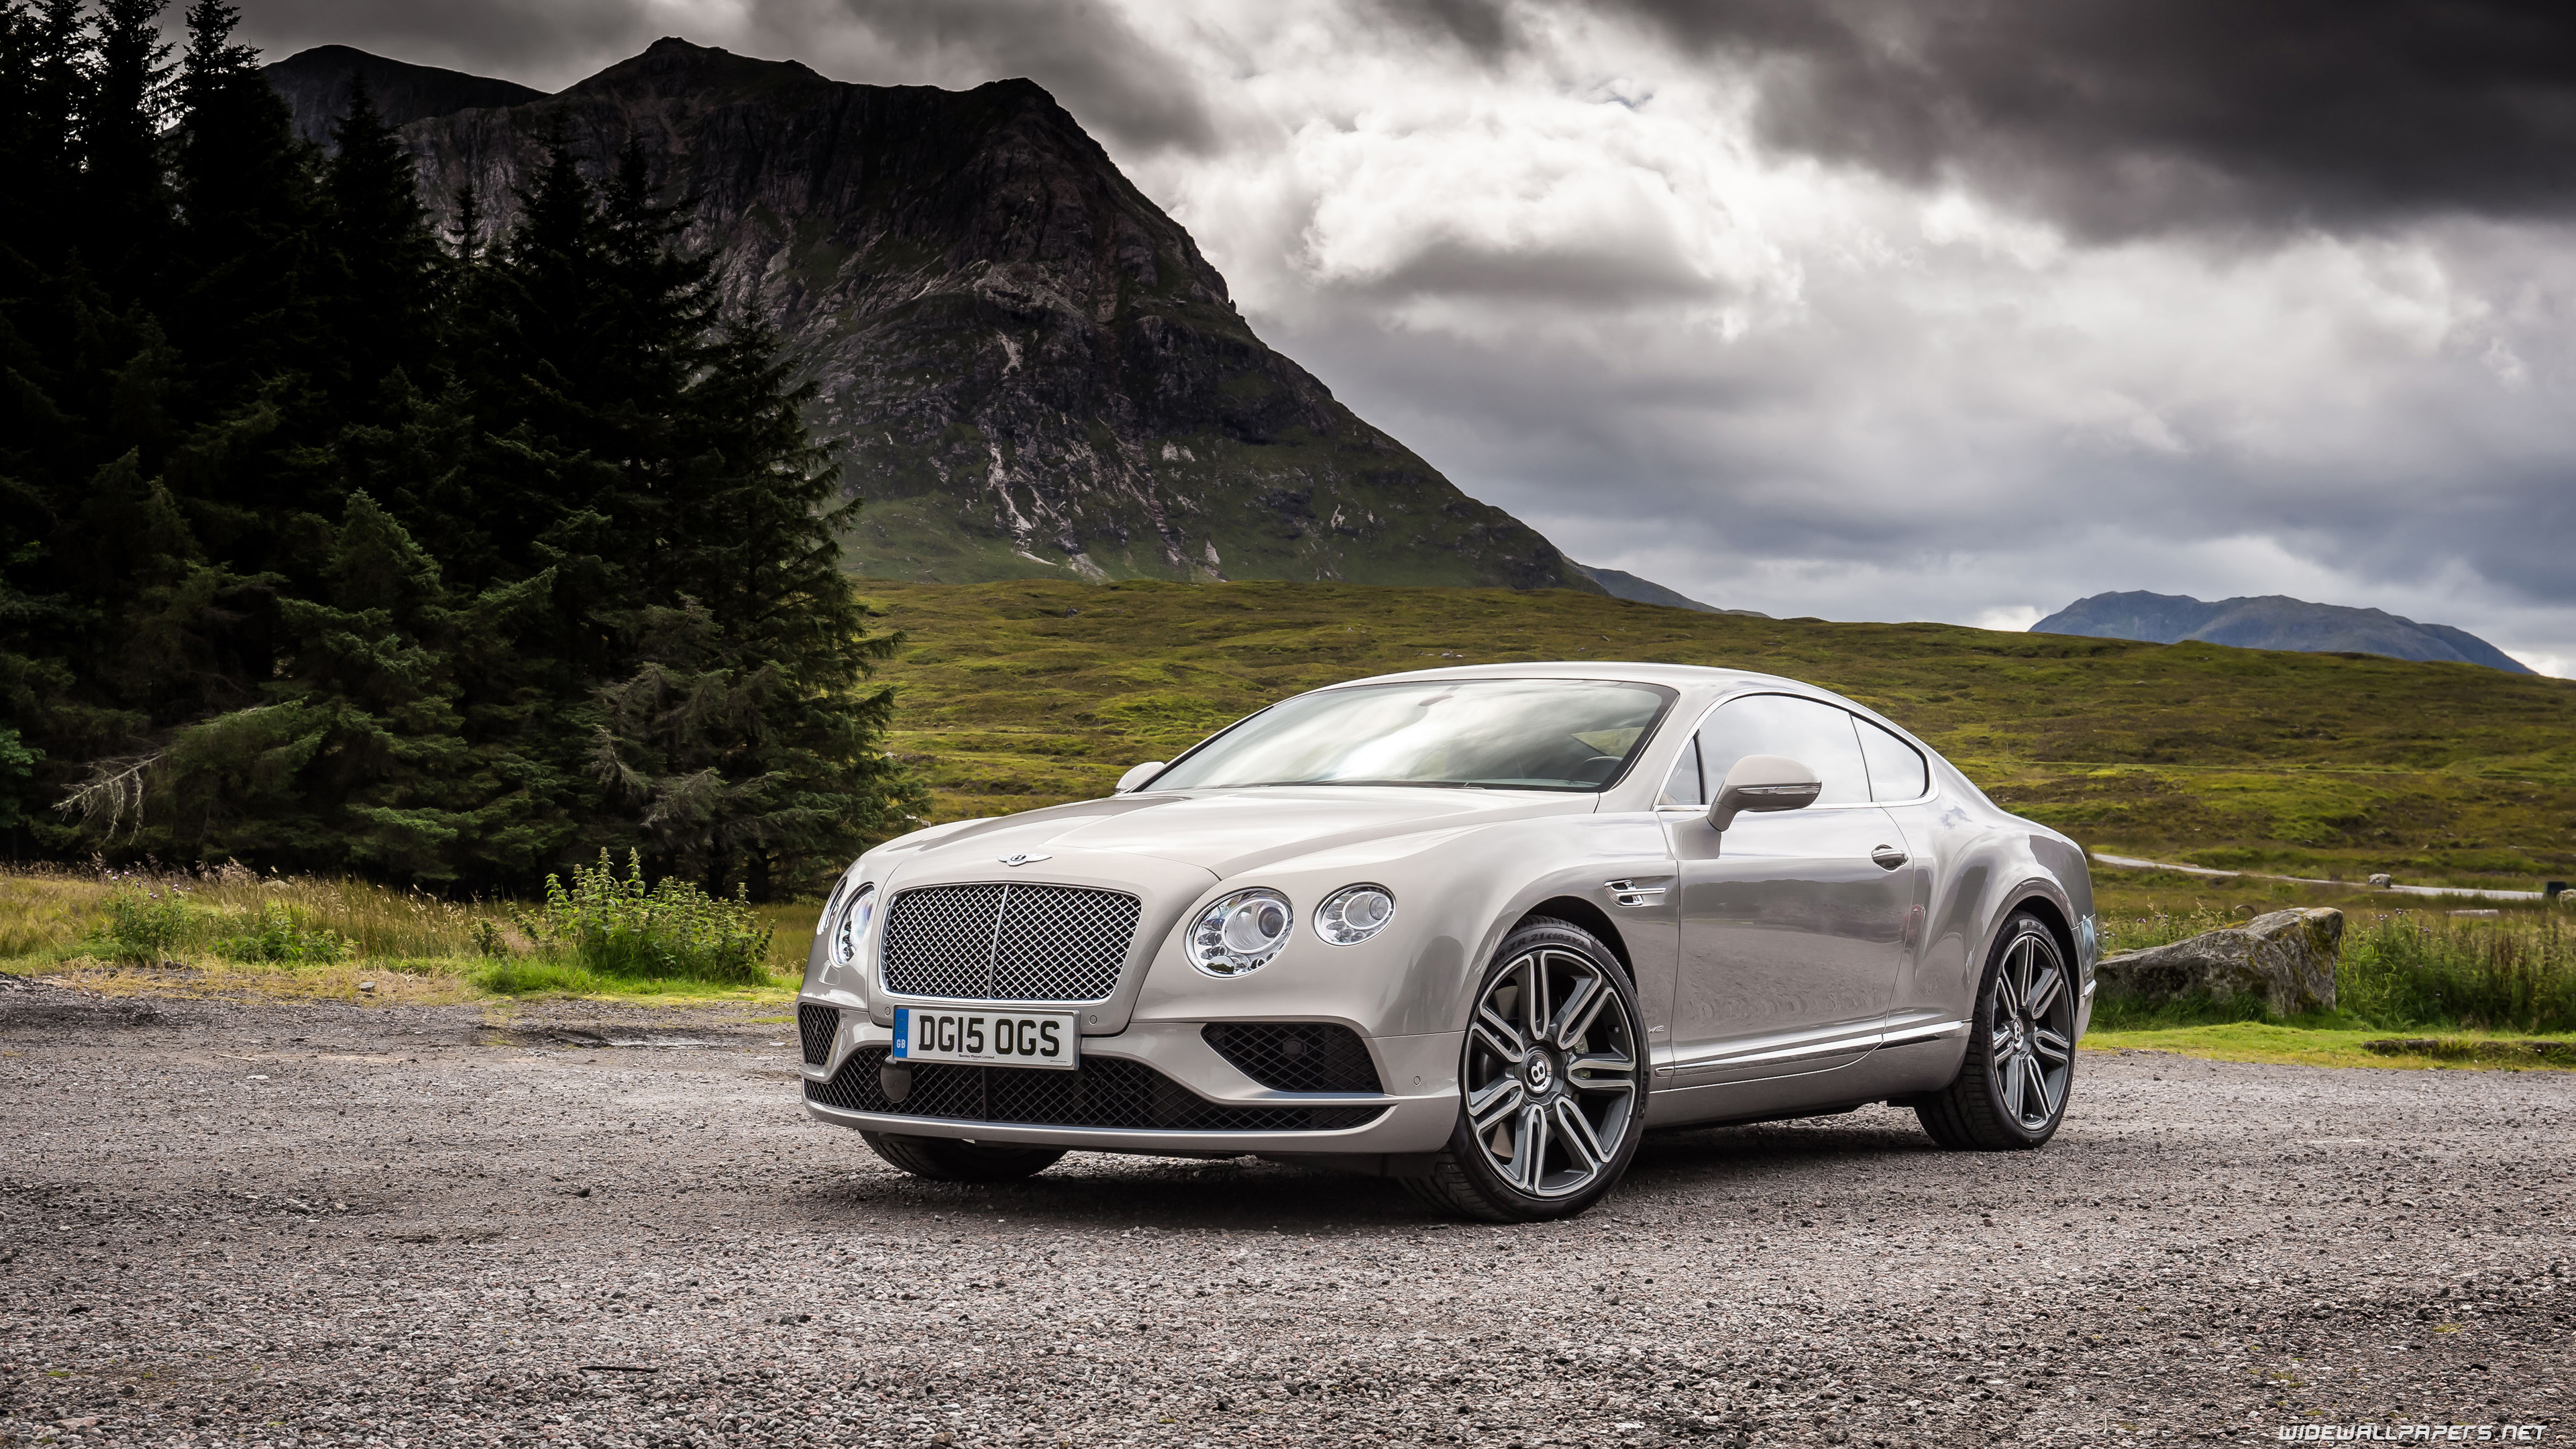 bentley continental gt cars desktop wallpapers 4k ultra hd